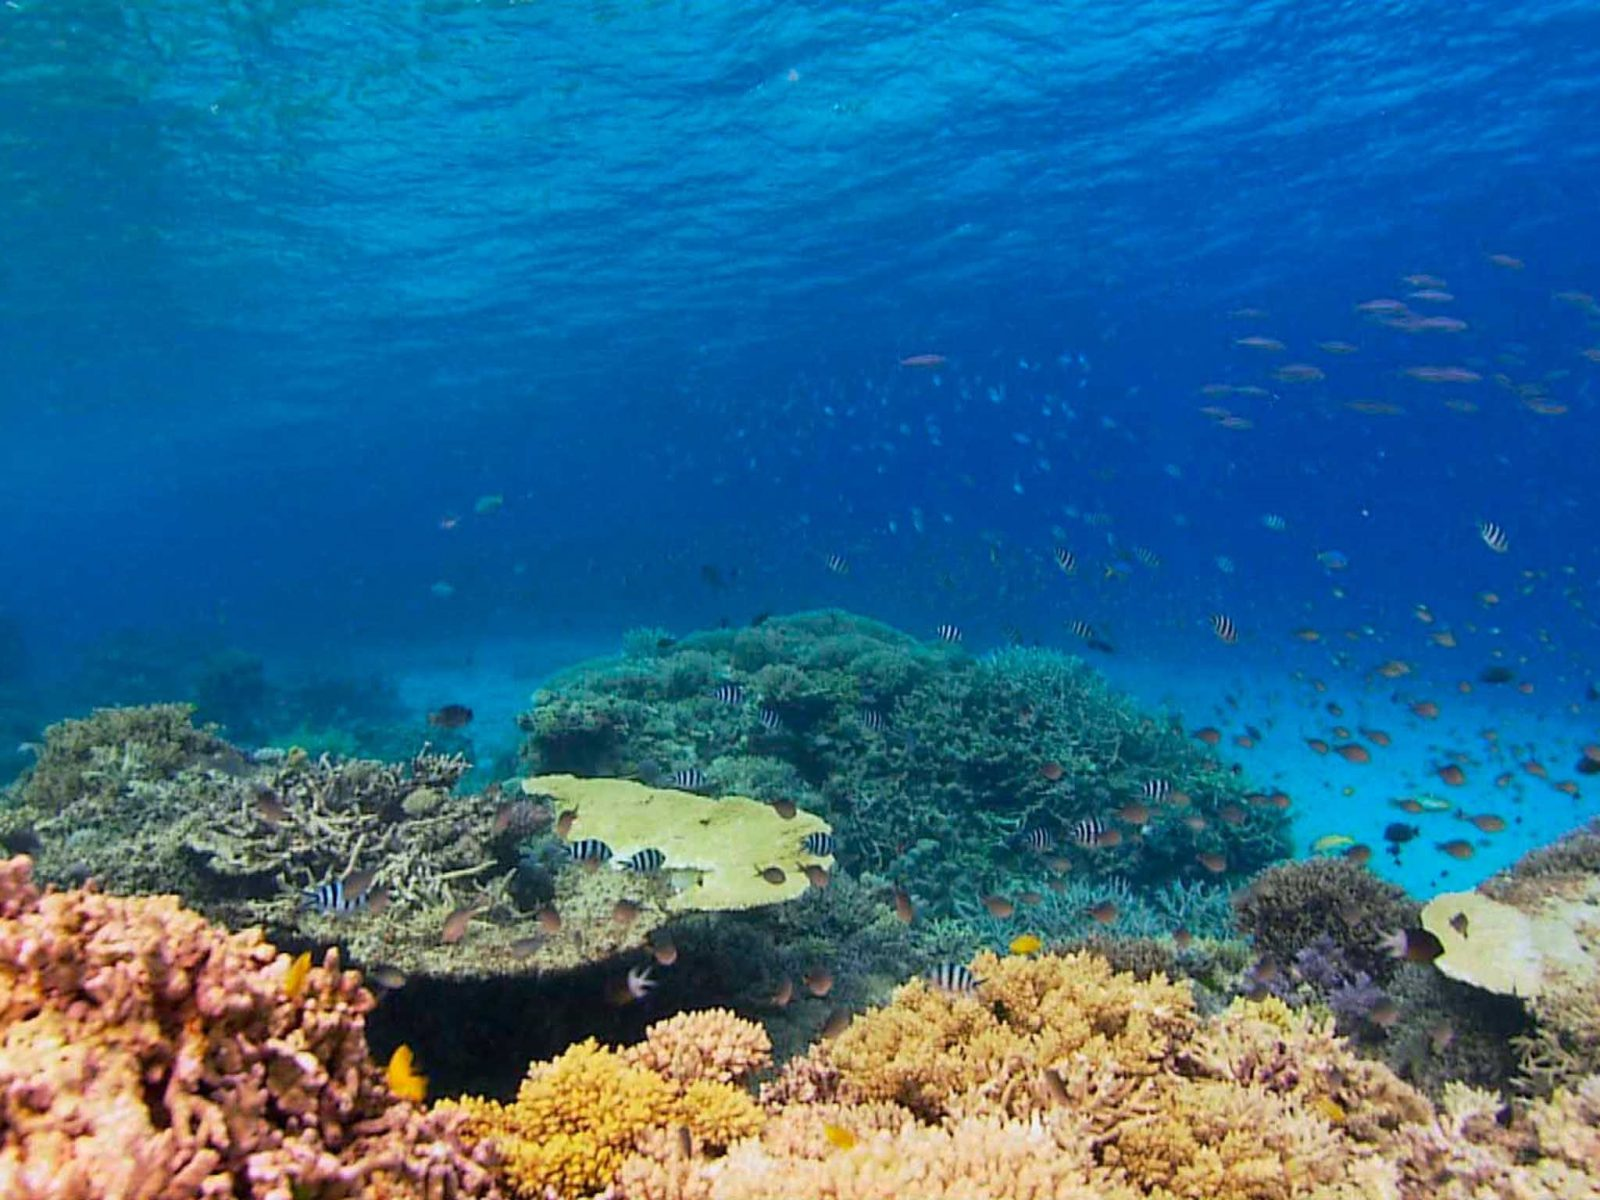 Recovery of the Great Barrier Reef